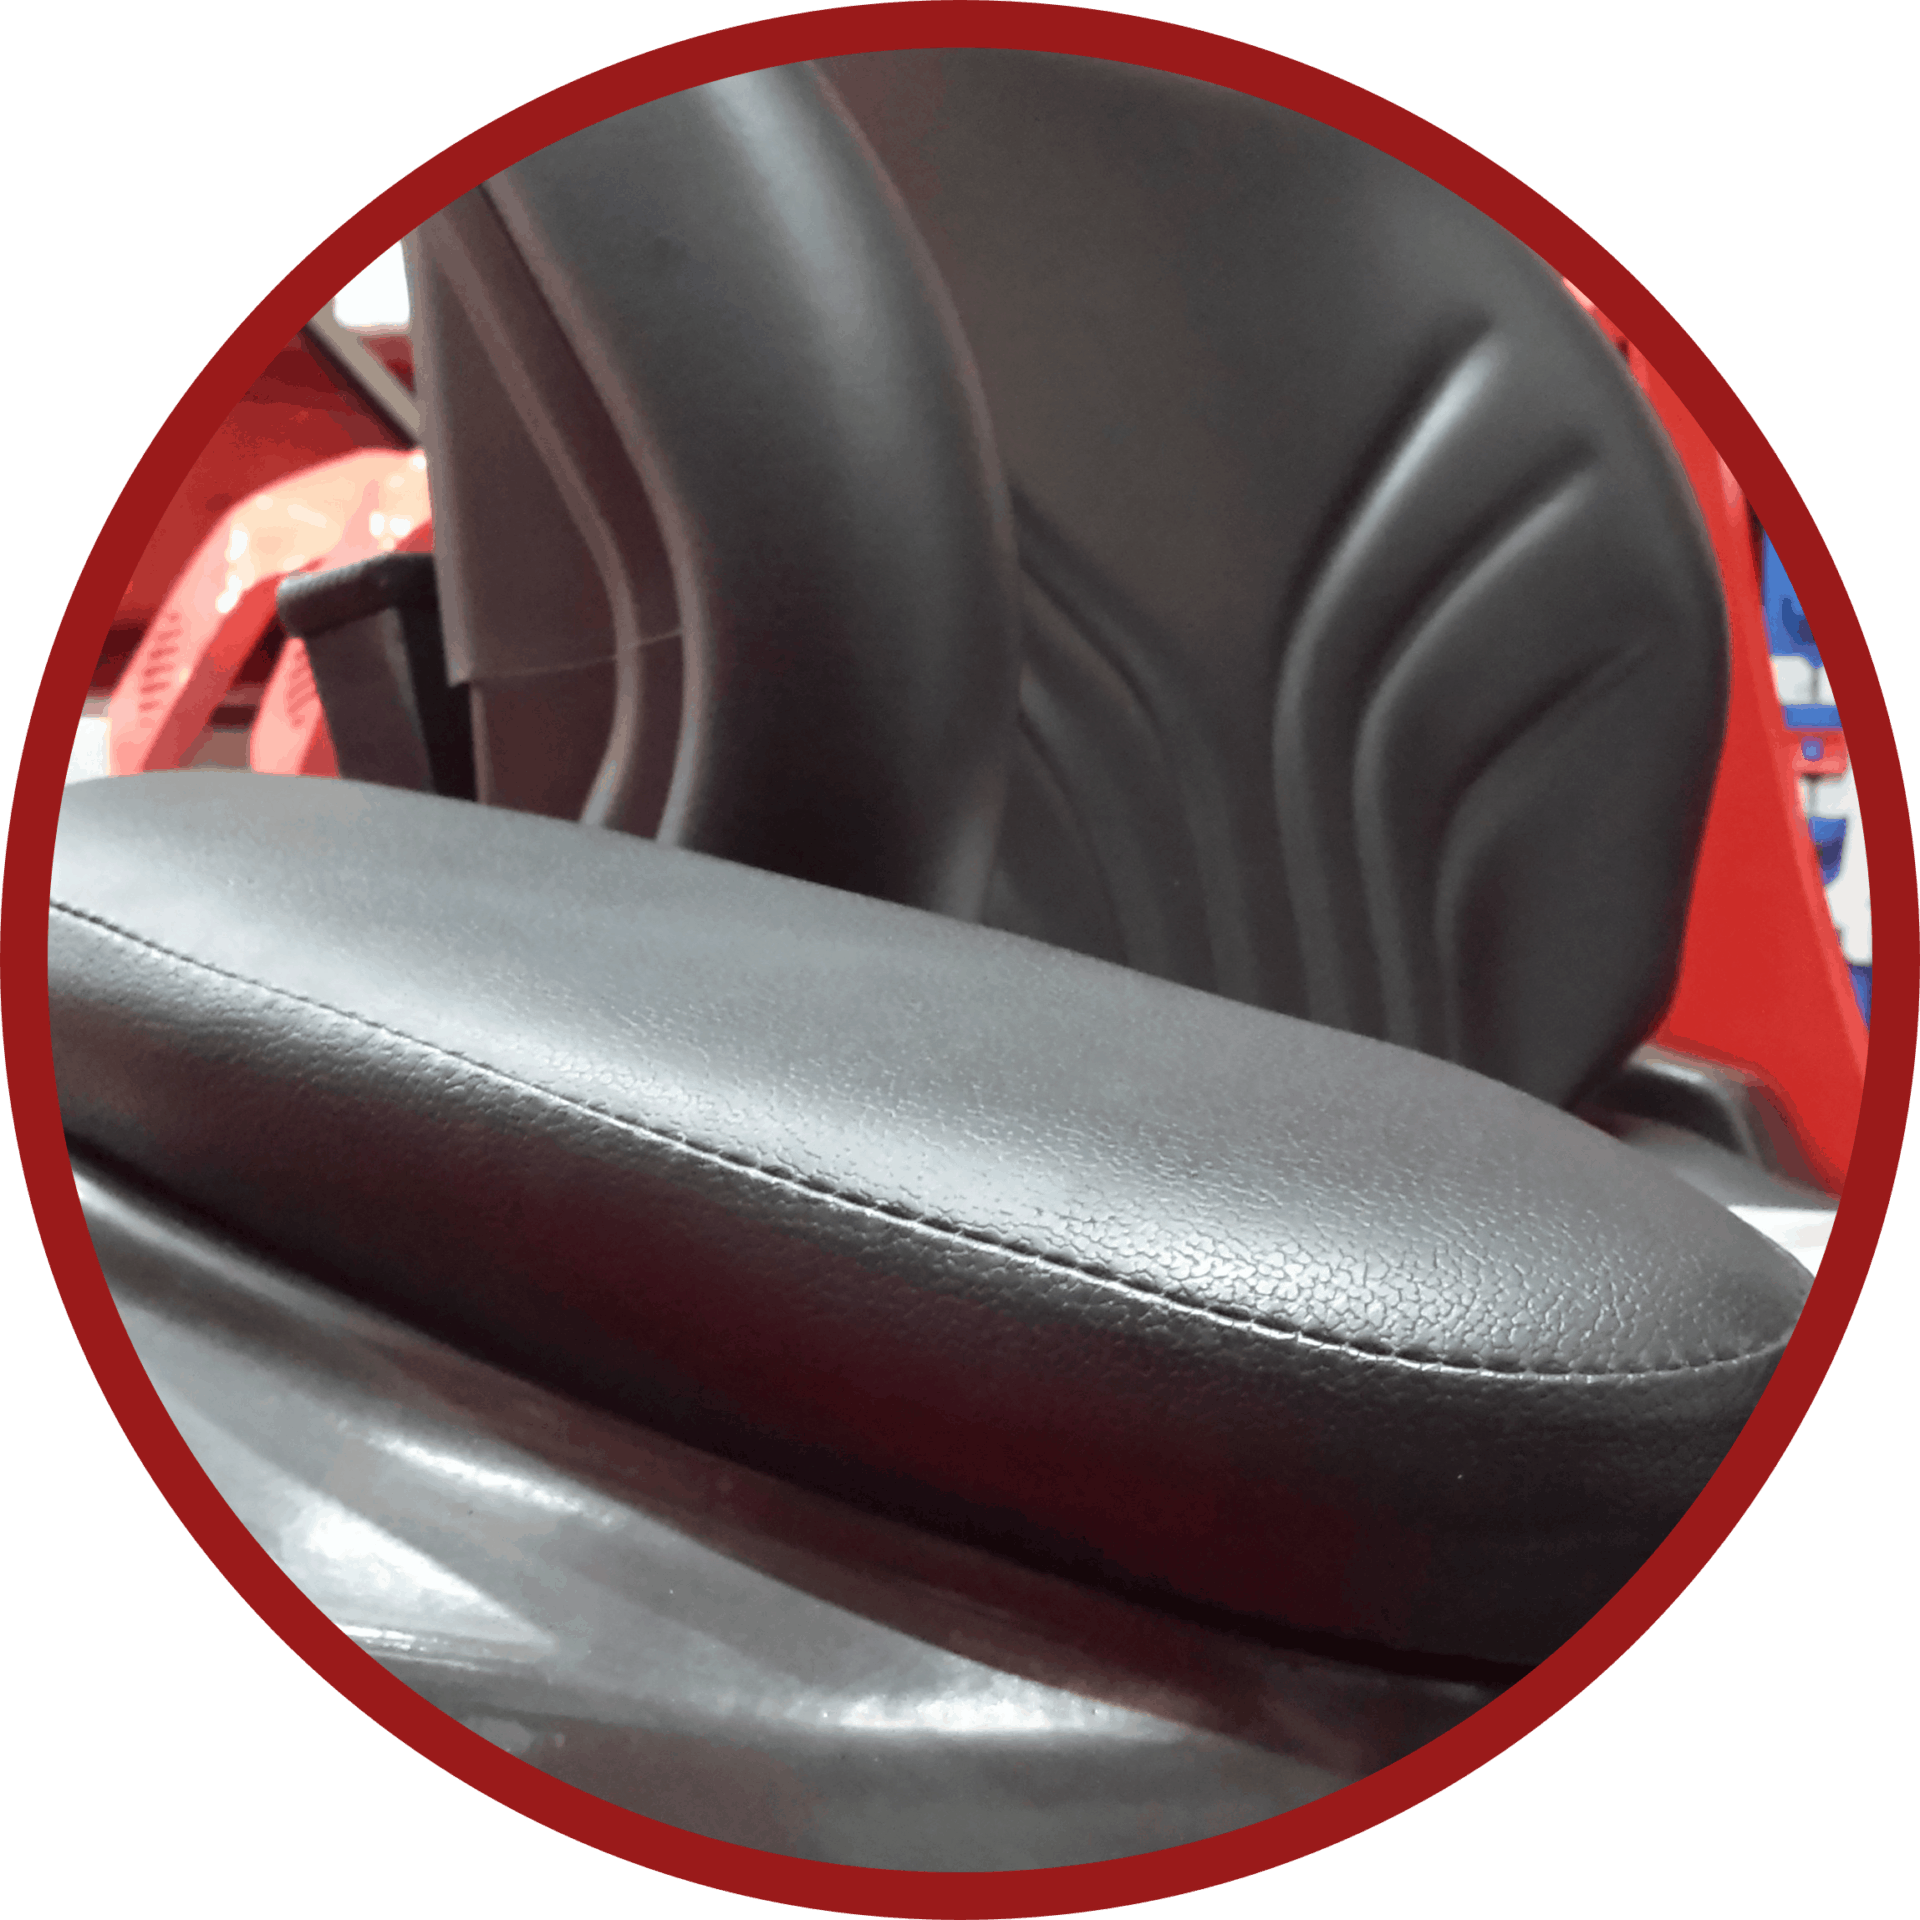 Arms For Standard Seat (MSG20) (Pair)